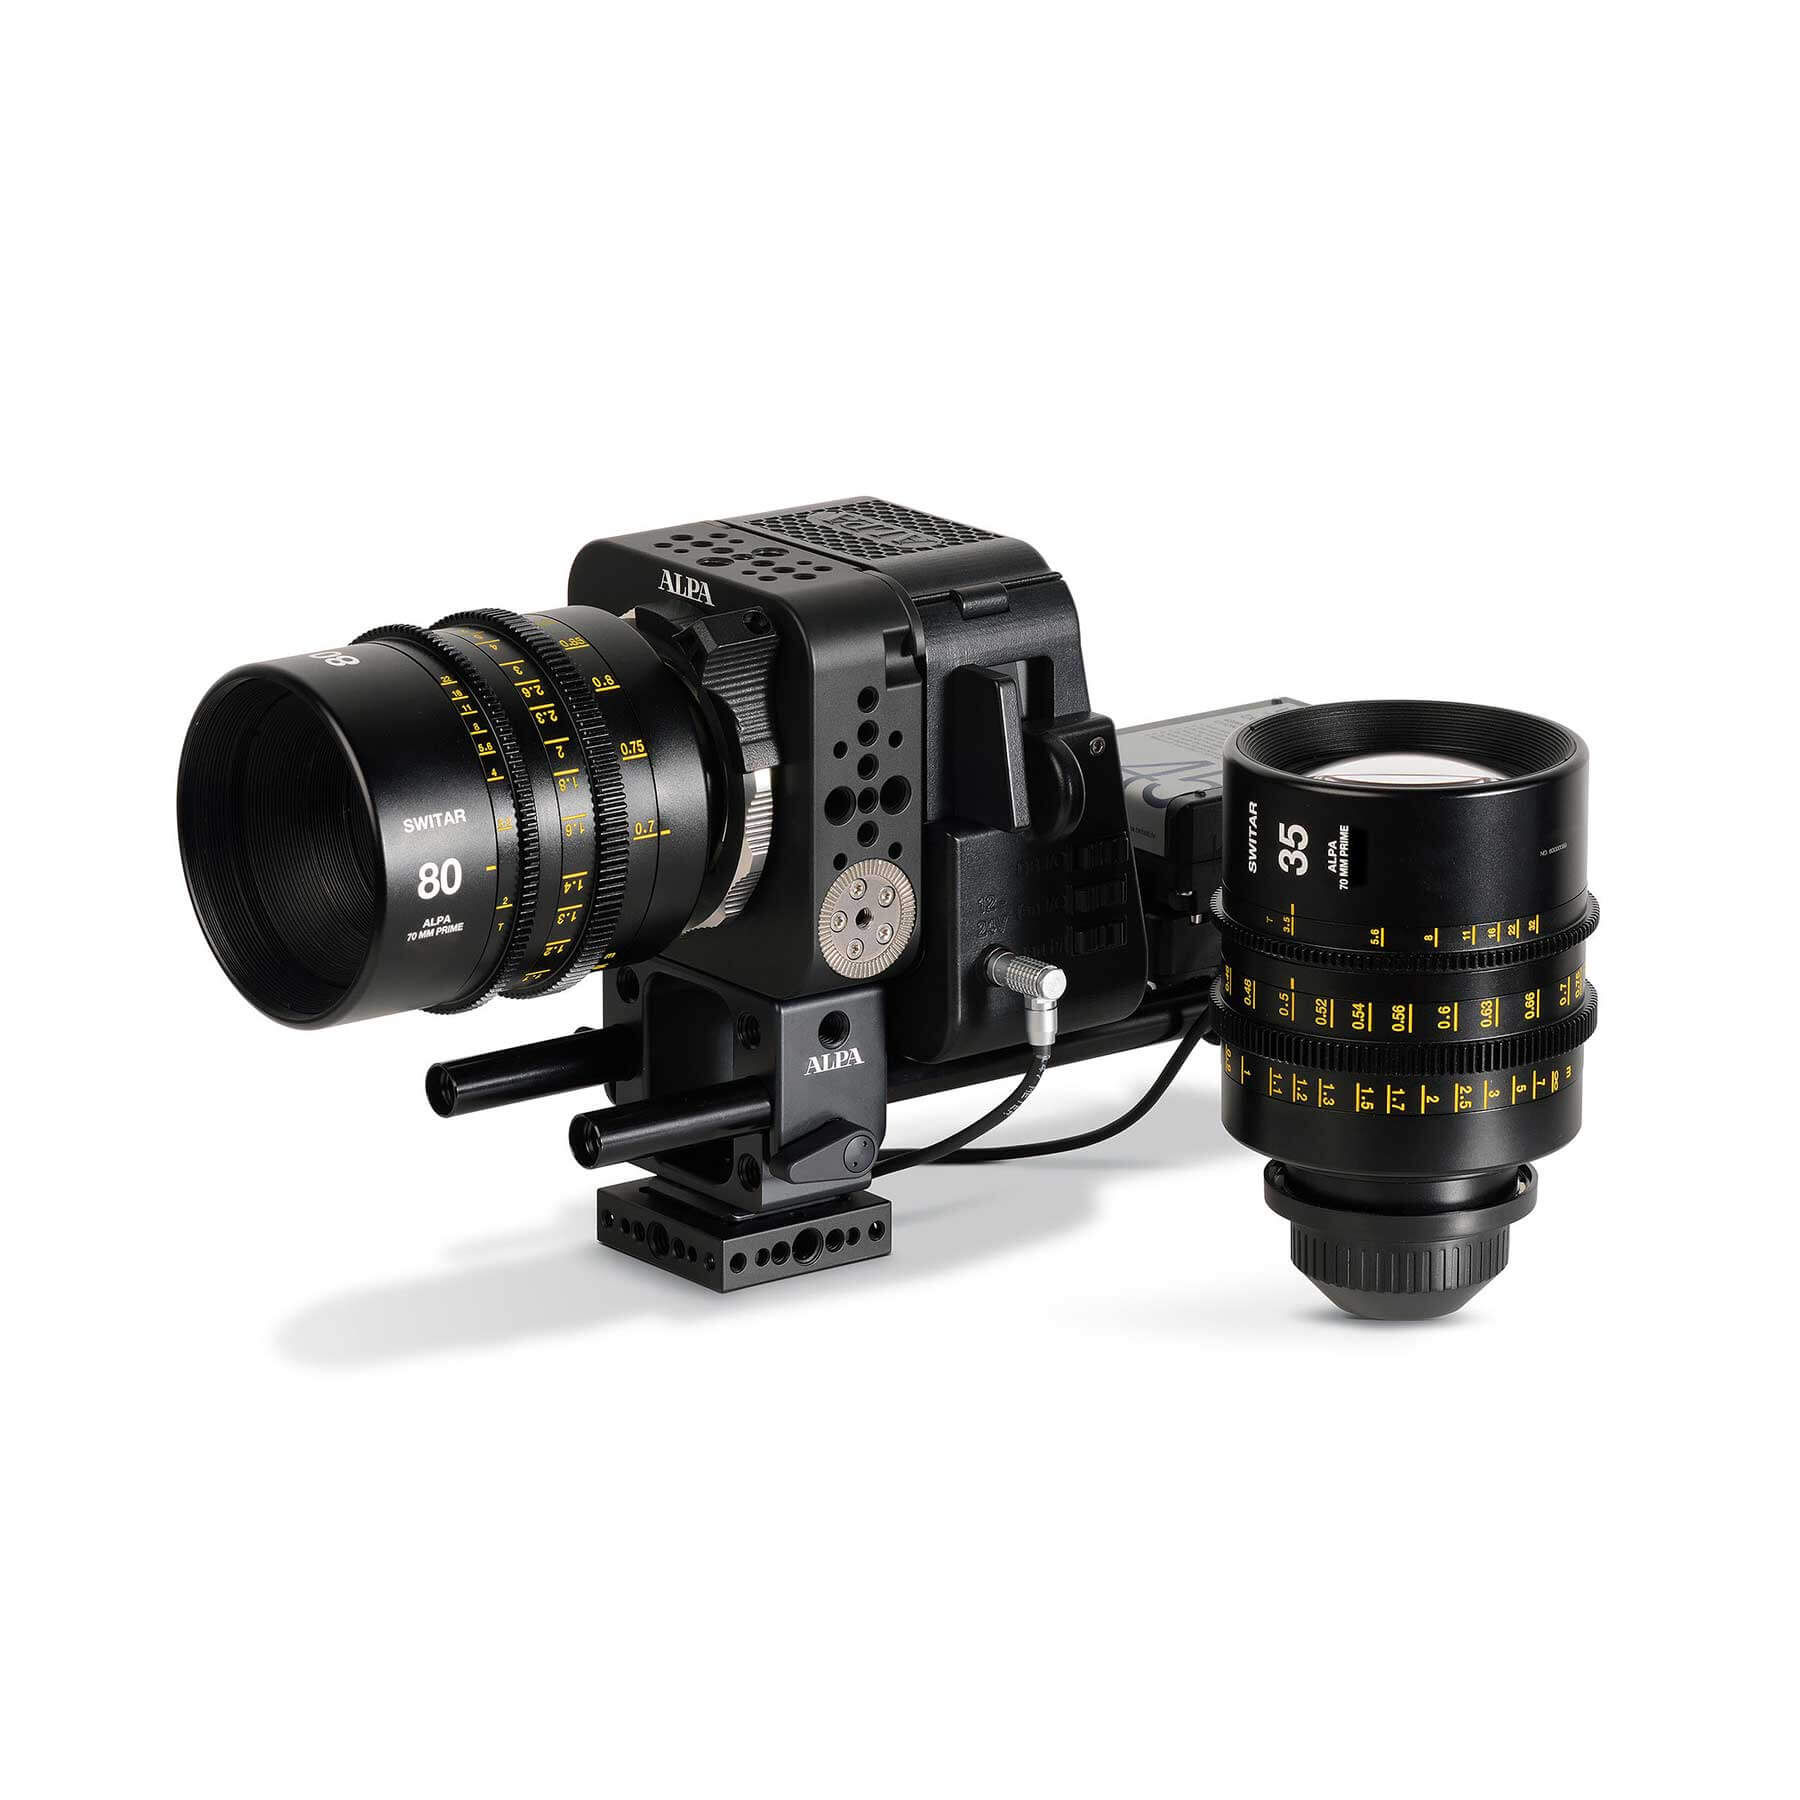 ALPA Platon Modular Moving Image Camera